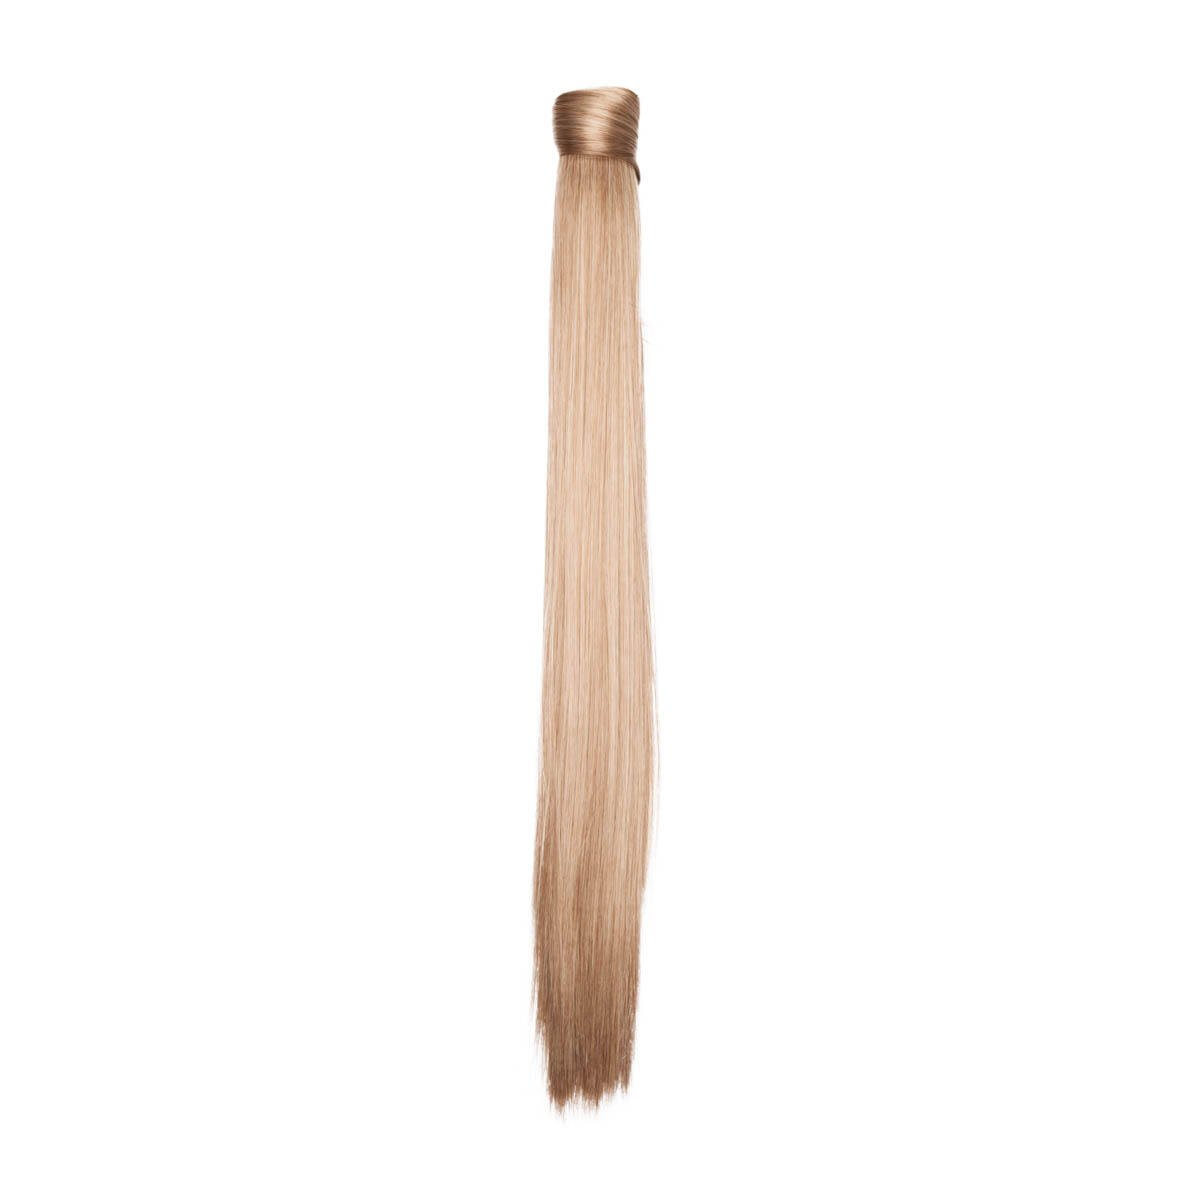 Clip-in Ponytail Synthetic 4.1 Cendre Ash Blonde 50 cm